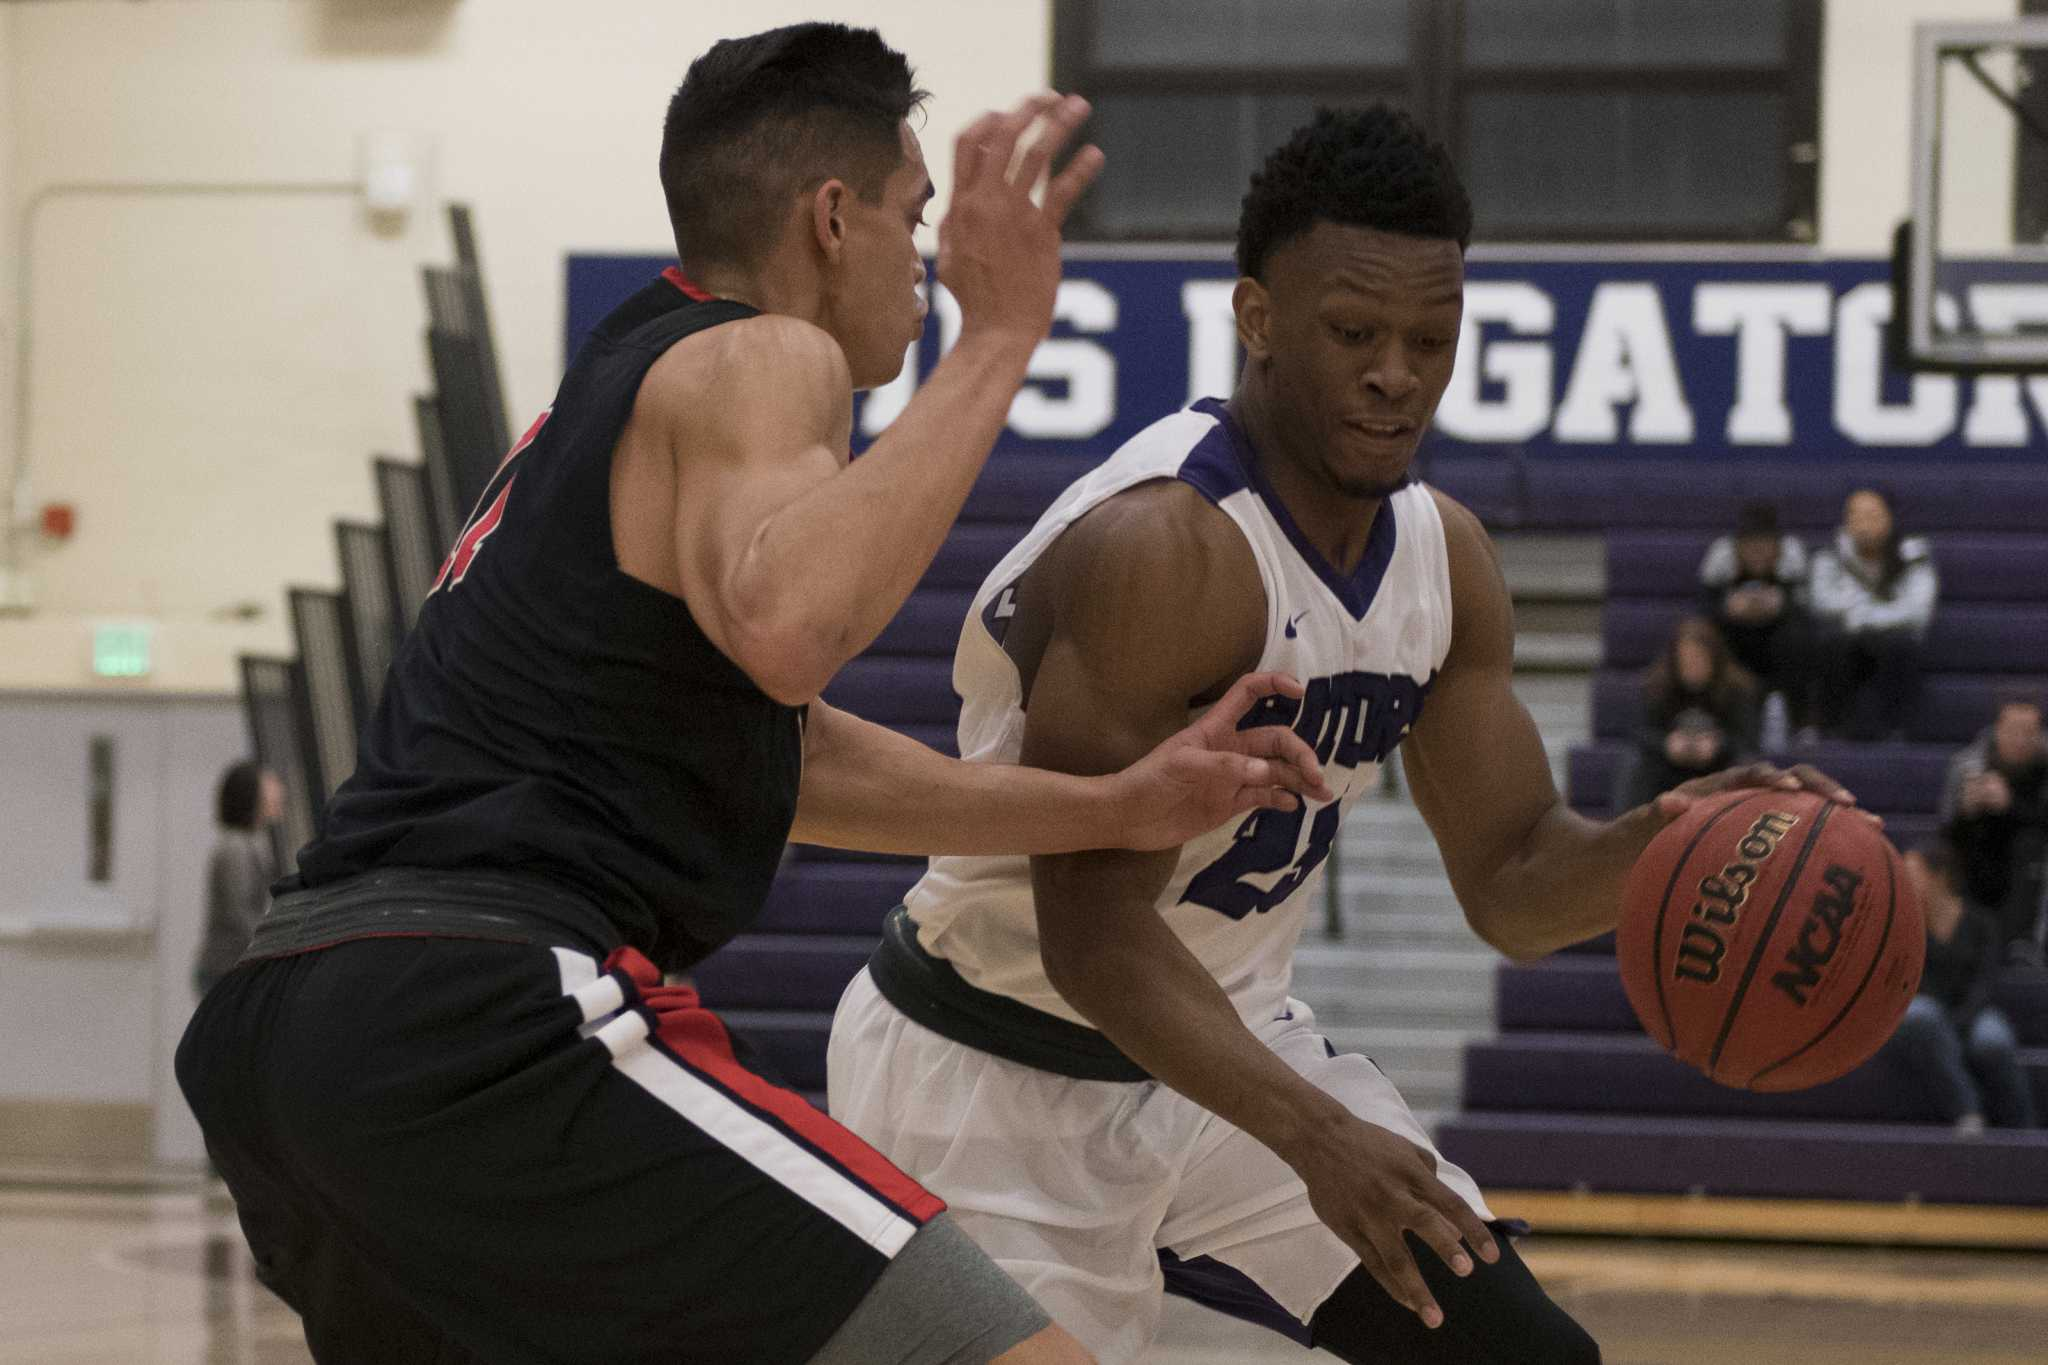 SF State Gators' sophomore guard Chiefy Ugbaja (23) drives to the basket against Pioneers' senior forward Micah Dunhour (11) during the Gators' 80-65 win over Cal State East Bay at the Swamp on Saturday, Dec. 3, 2016.